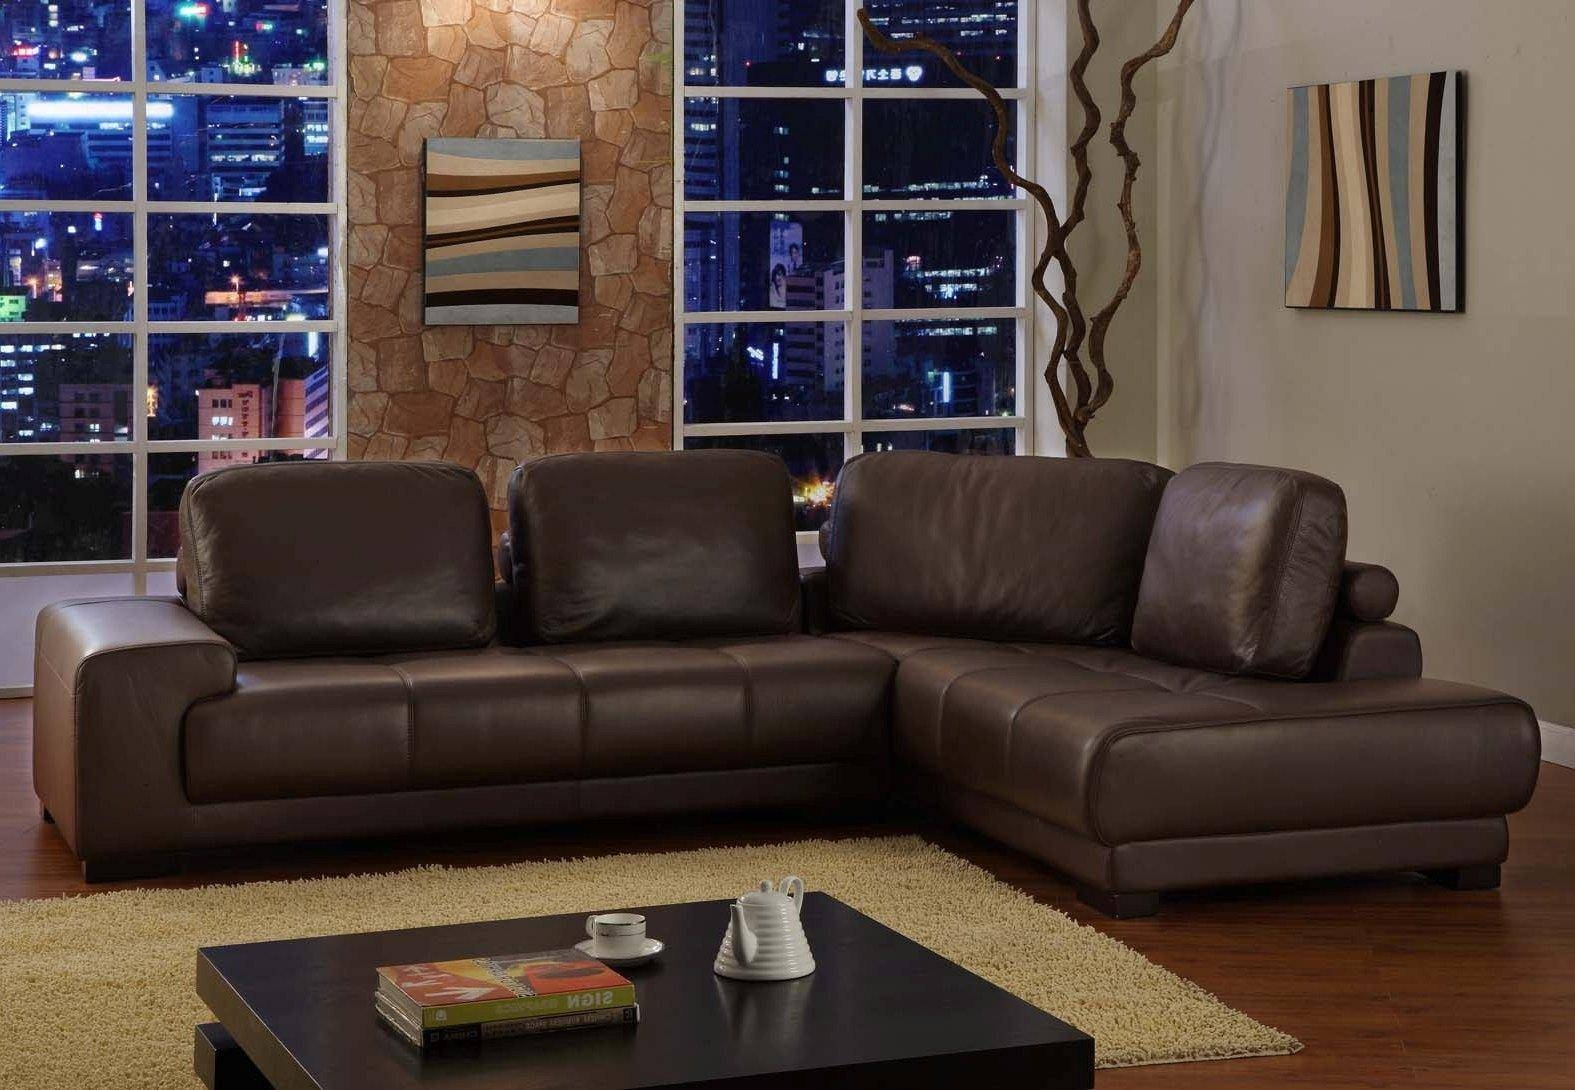 Sofas Center : Contemporary Sectional Sofas On Clearance with regard to Charleston Sectional Sofas (Image 14 of 15)